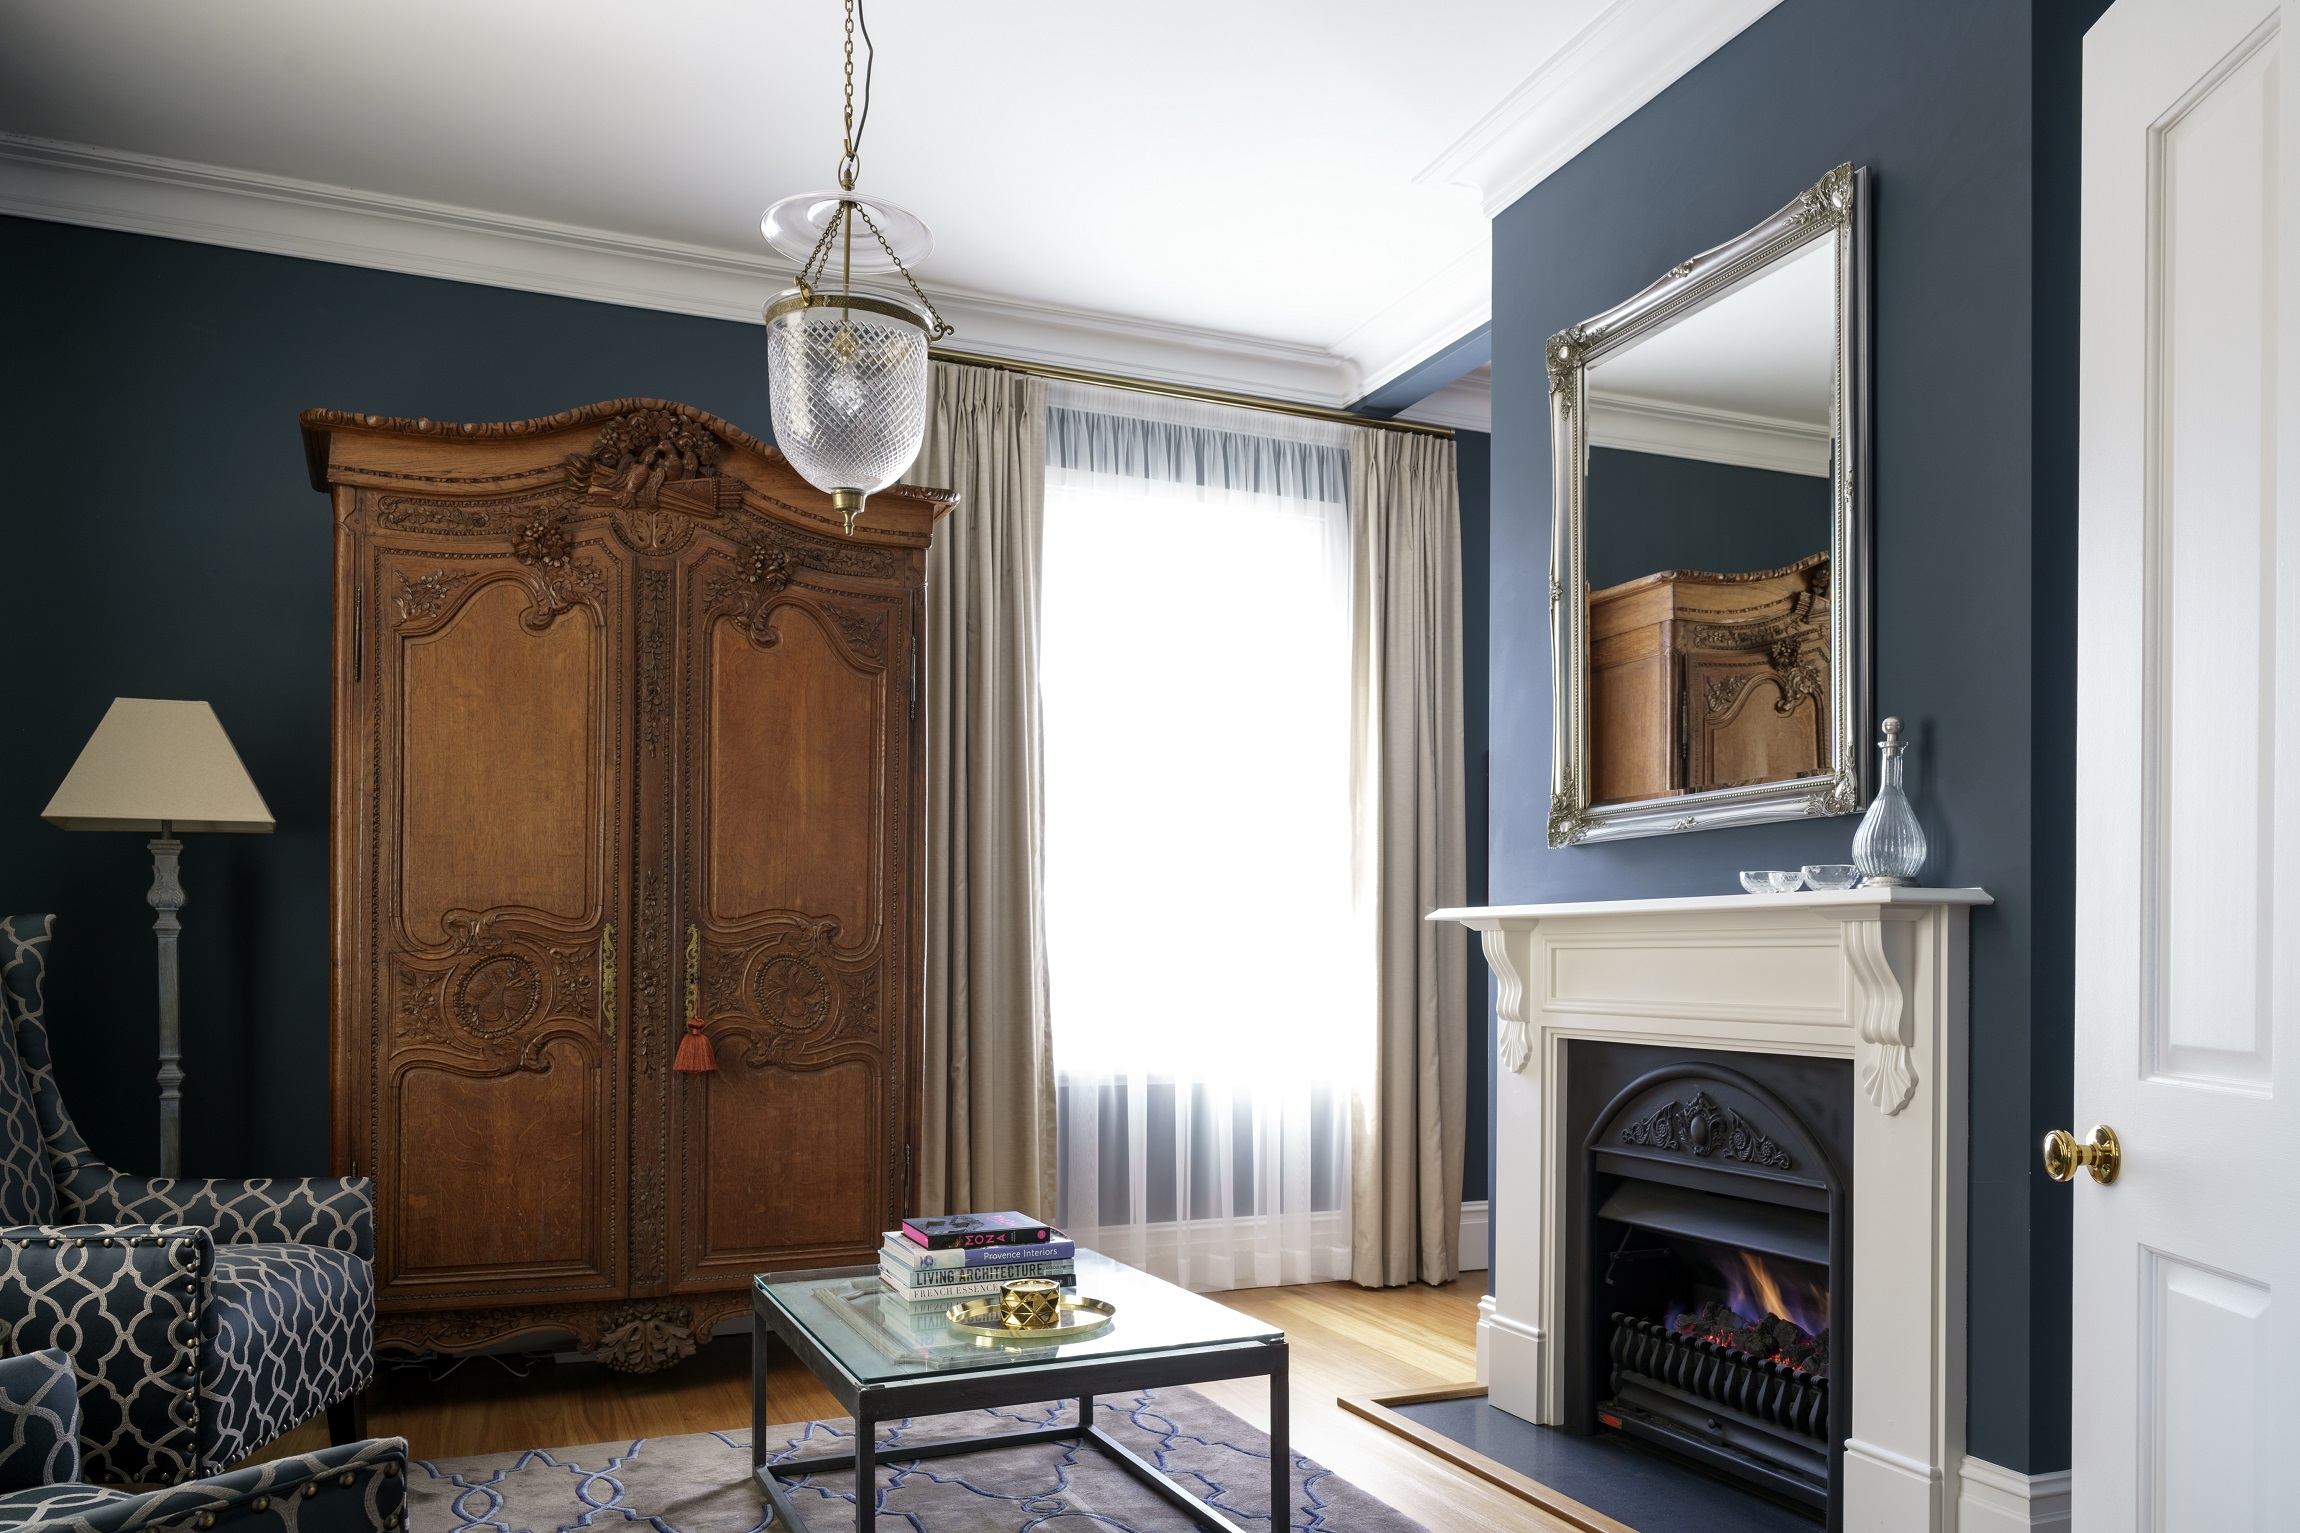 100-Year-Old-Heritage-Home-Restoration-Living-Fireplace-Michael-Bell-Architects-Sydney